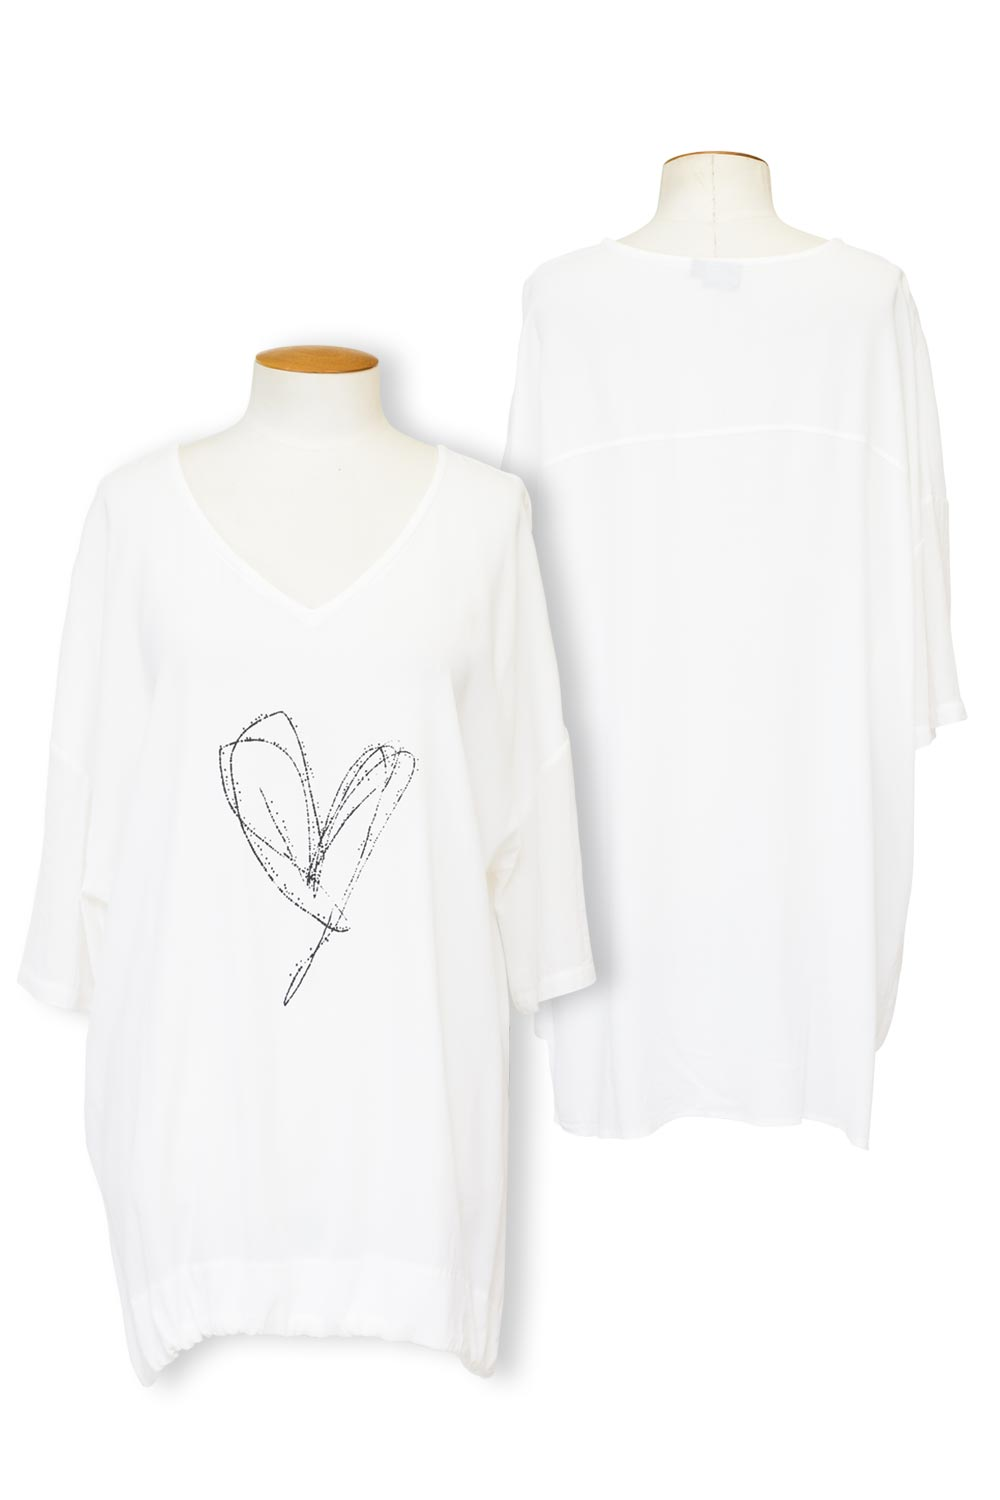 Cashews - C533 Chloe Heart Top